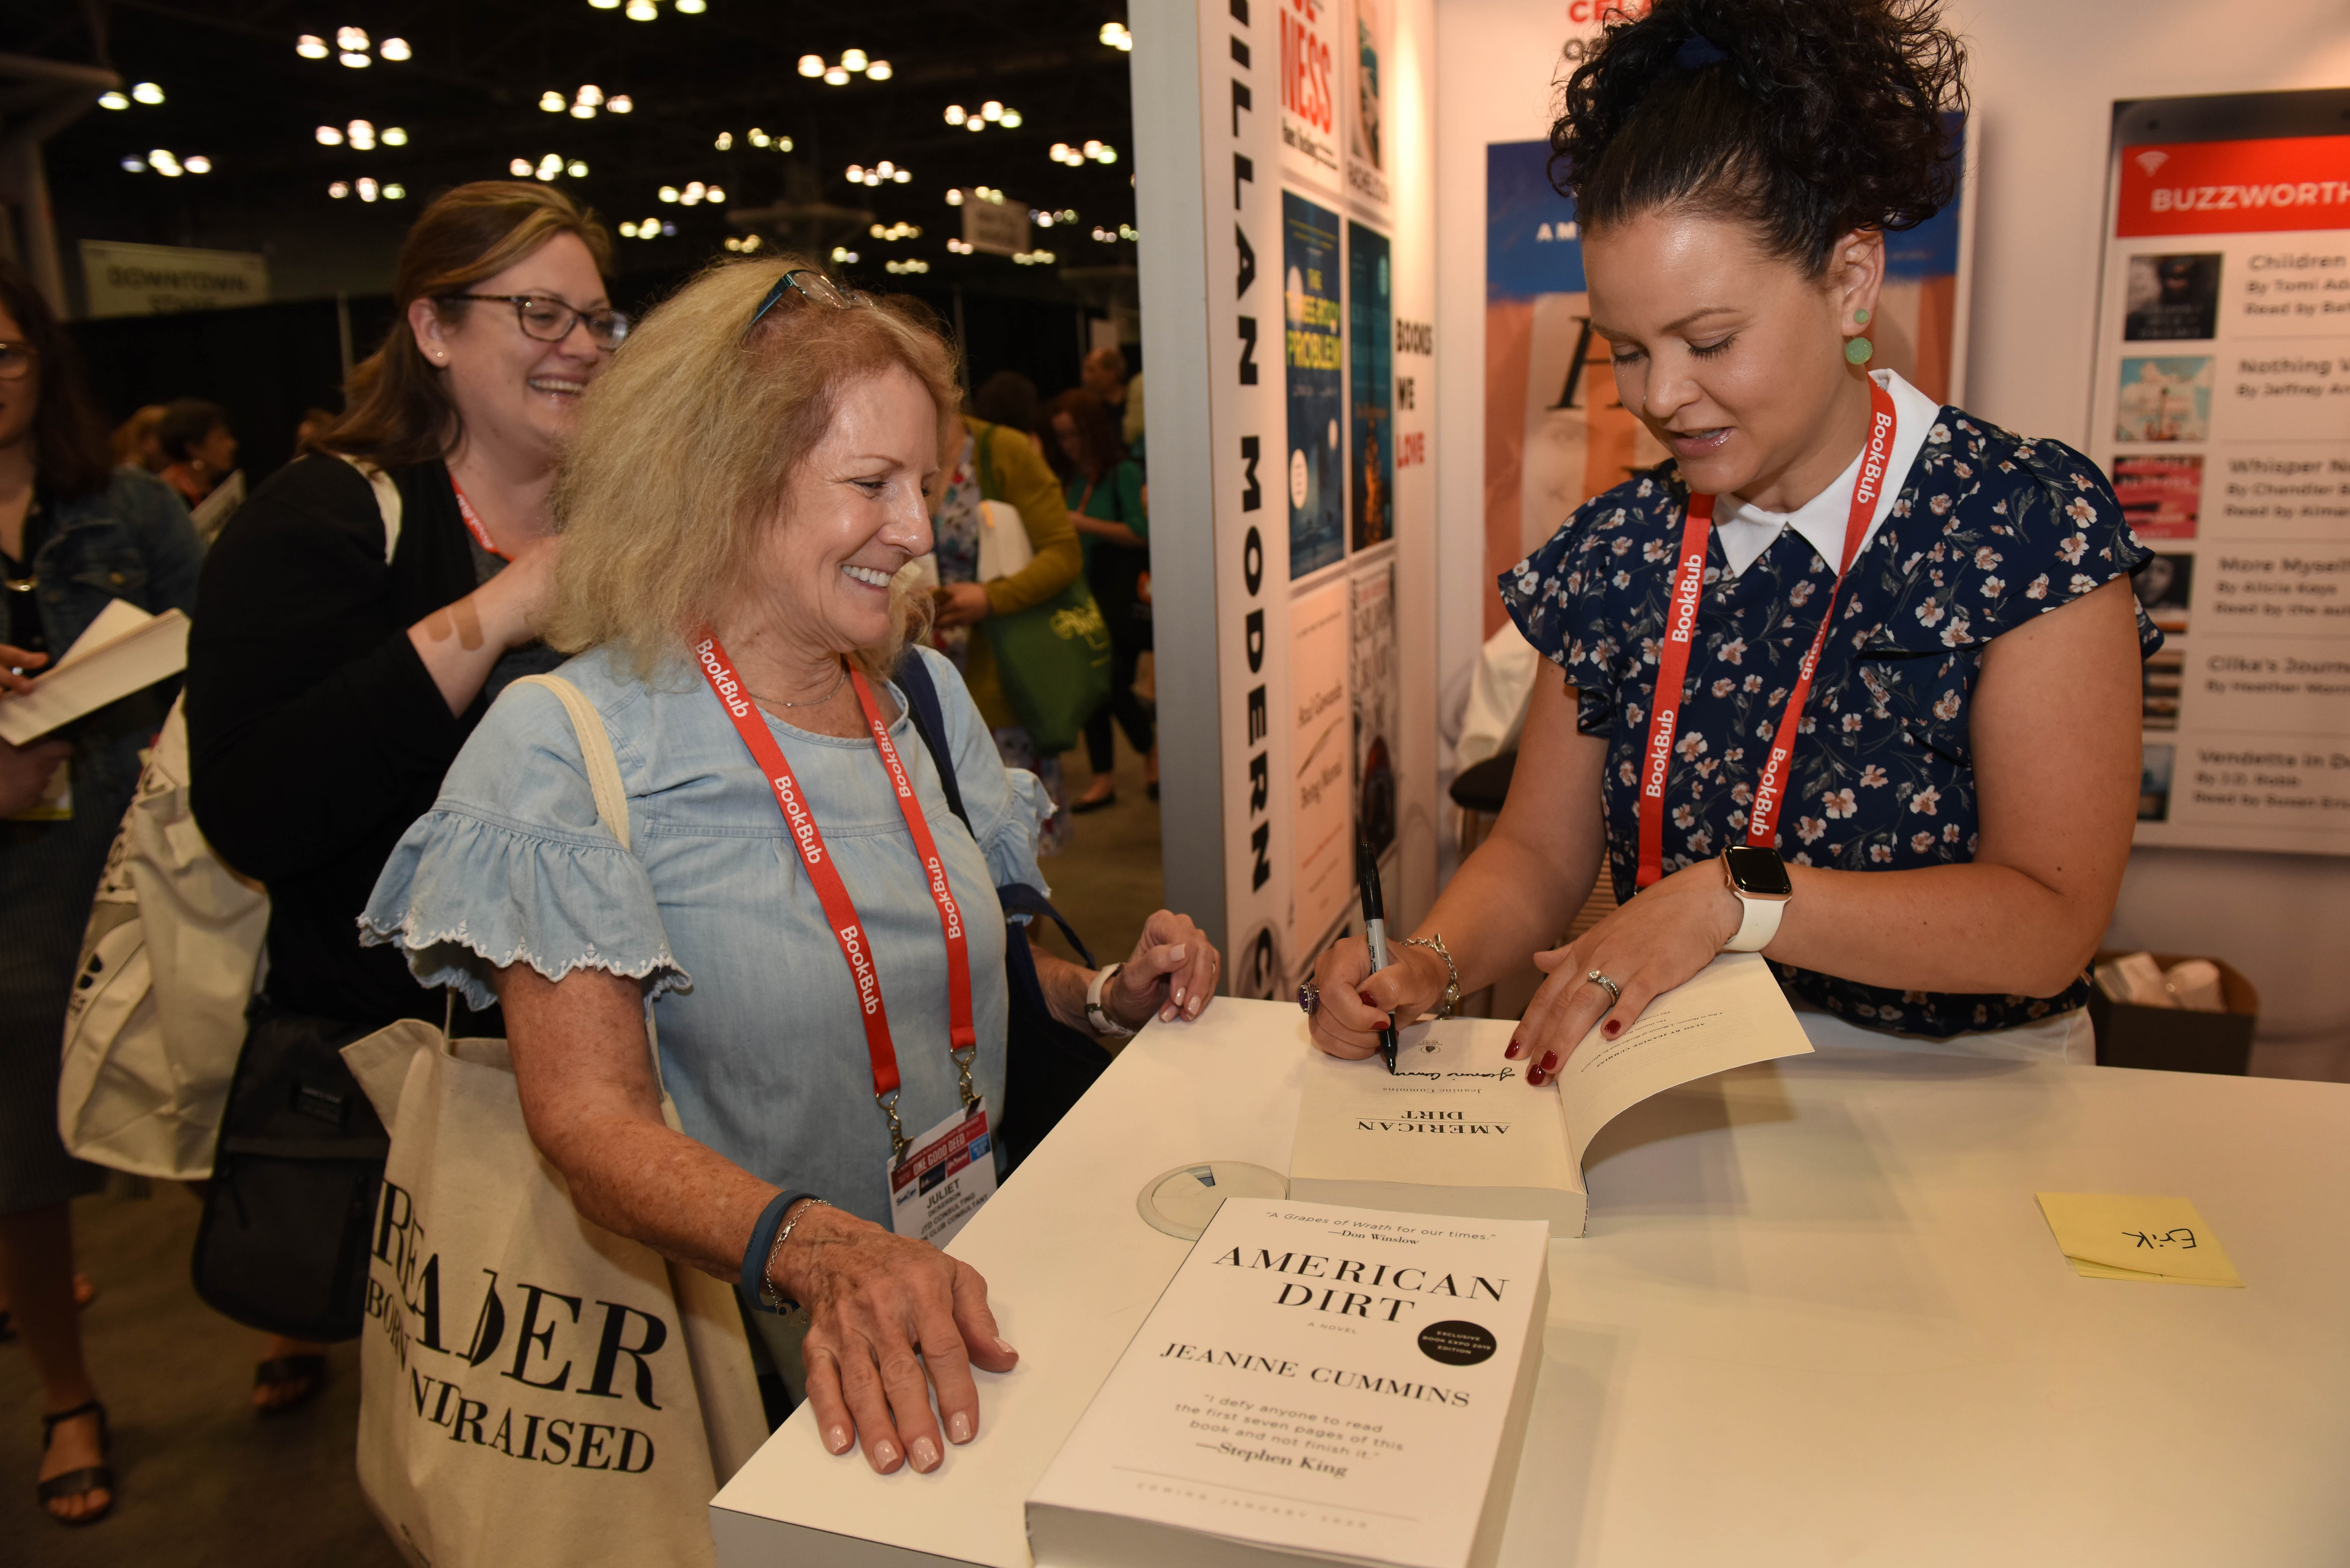 Bea Cummins bookexpo 2019: literary fiction gets the buzz